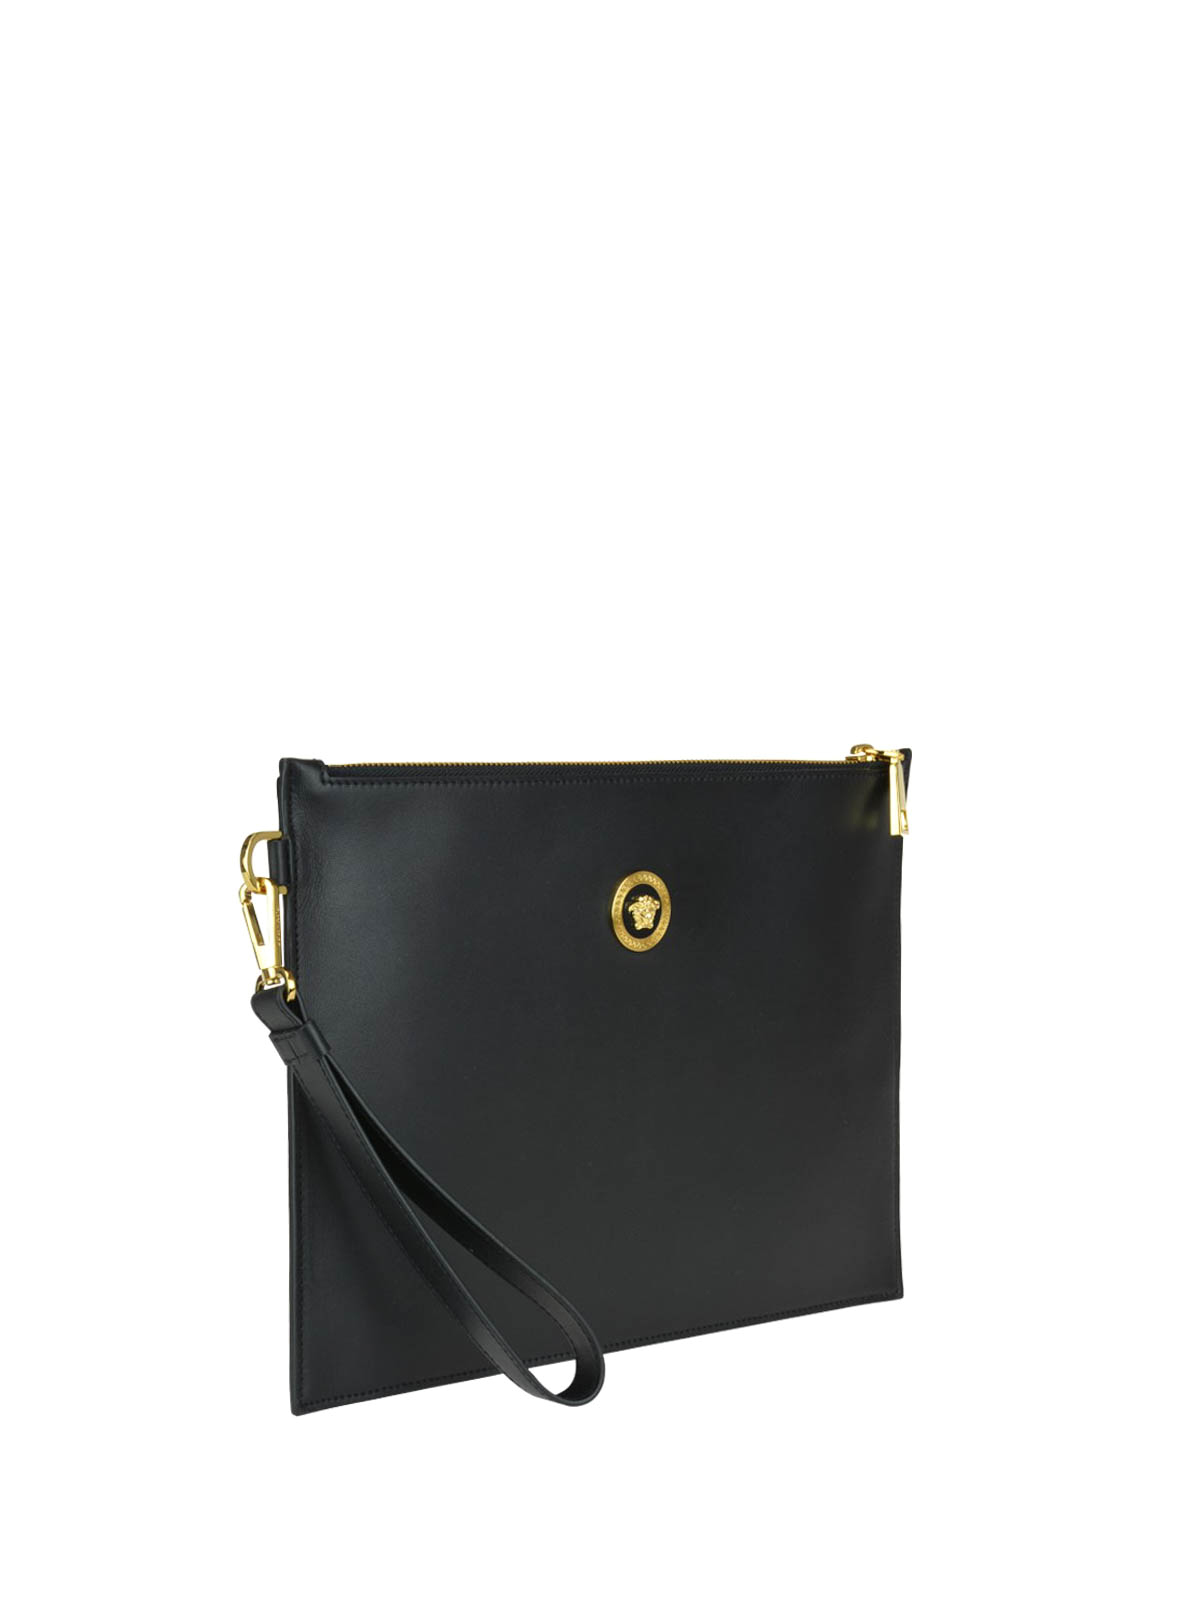 1dcf29e1fbe6 VERSACE  clutches online - Medusa Head detailed black leather clutch